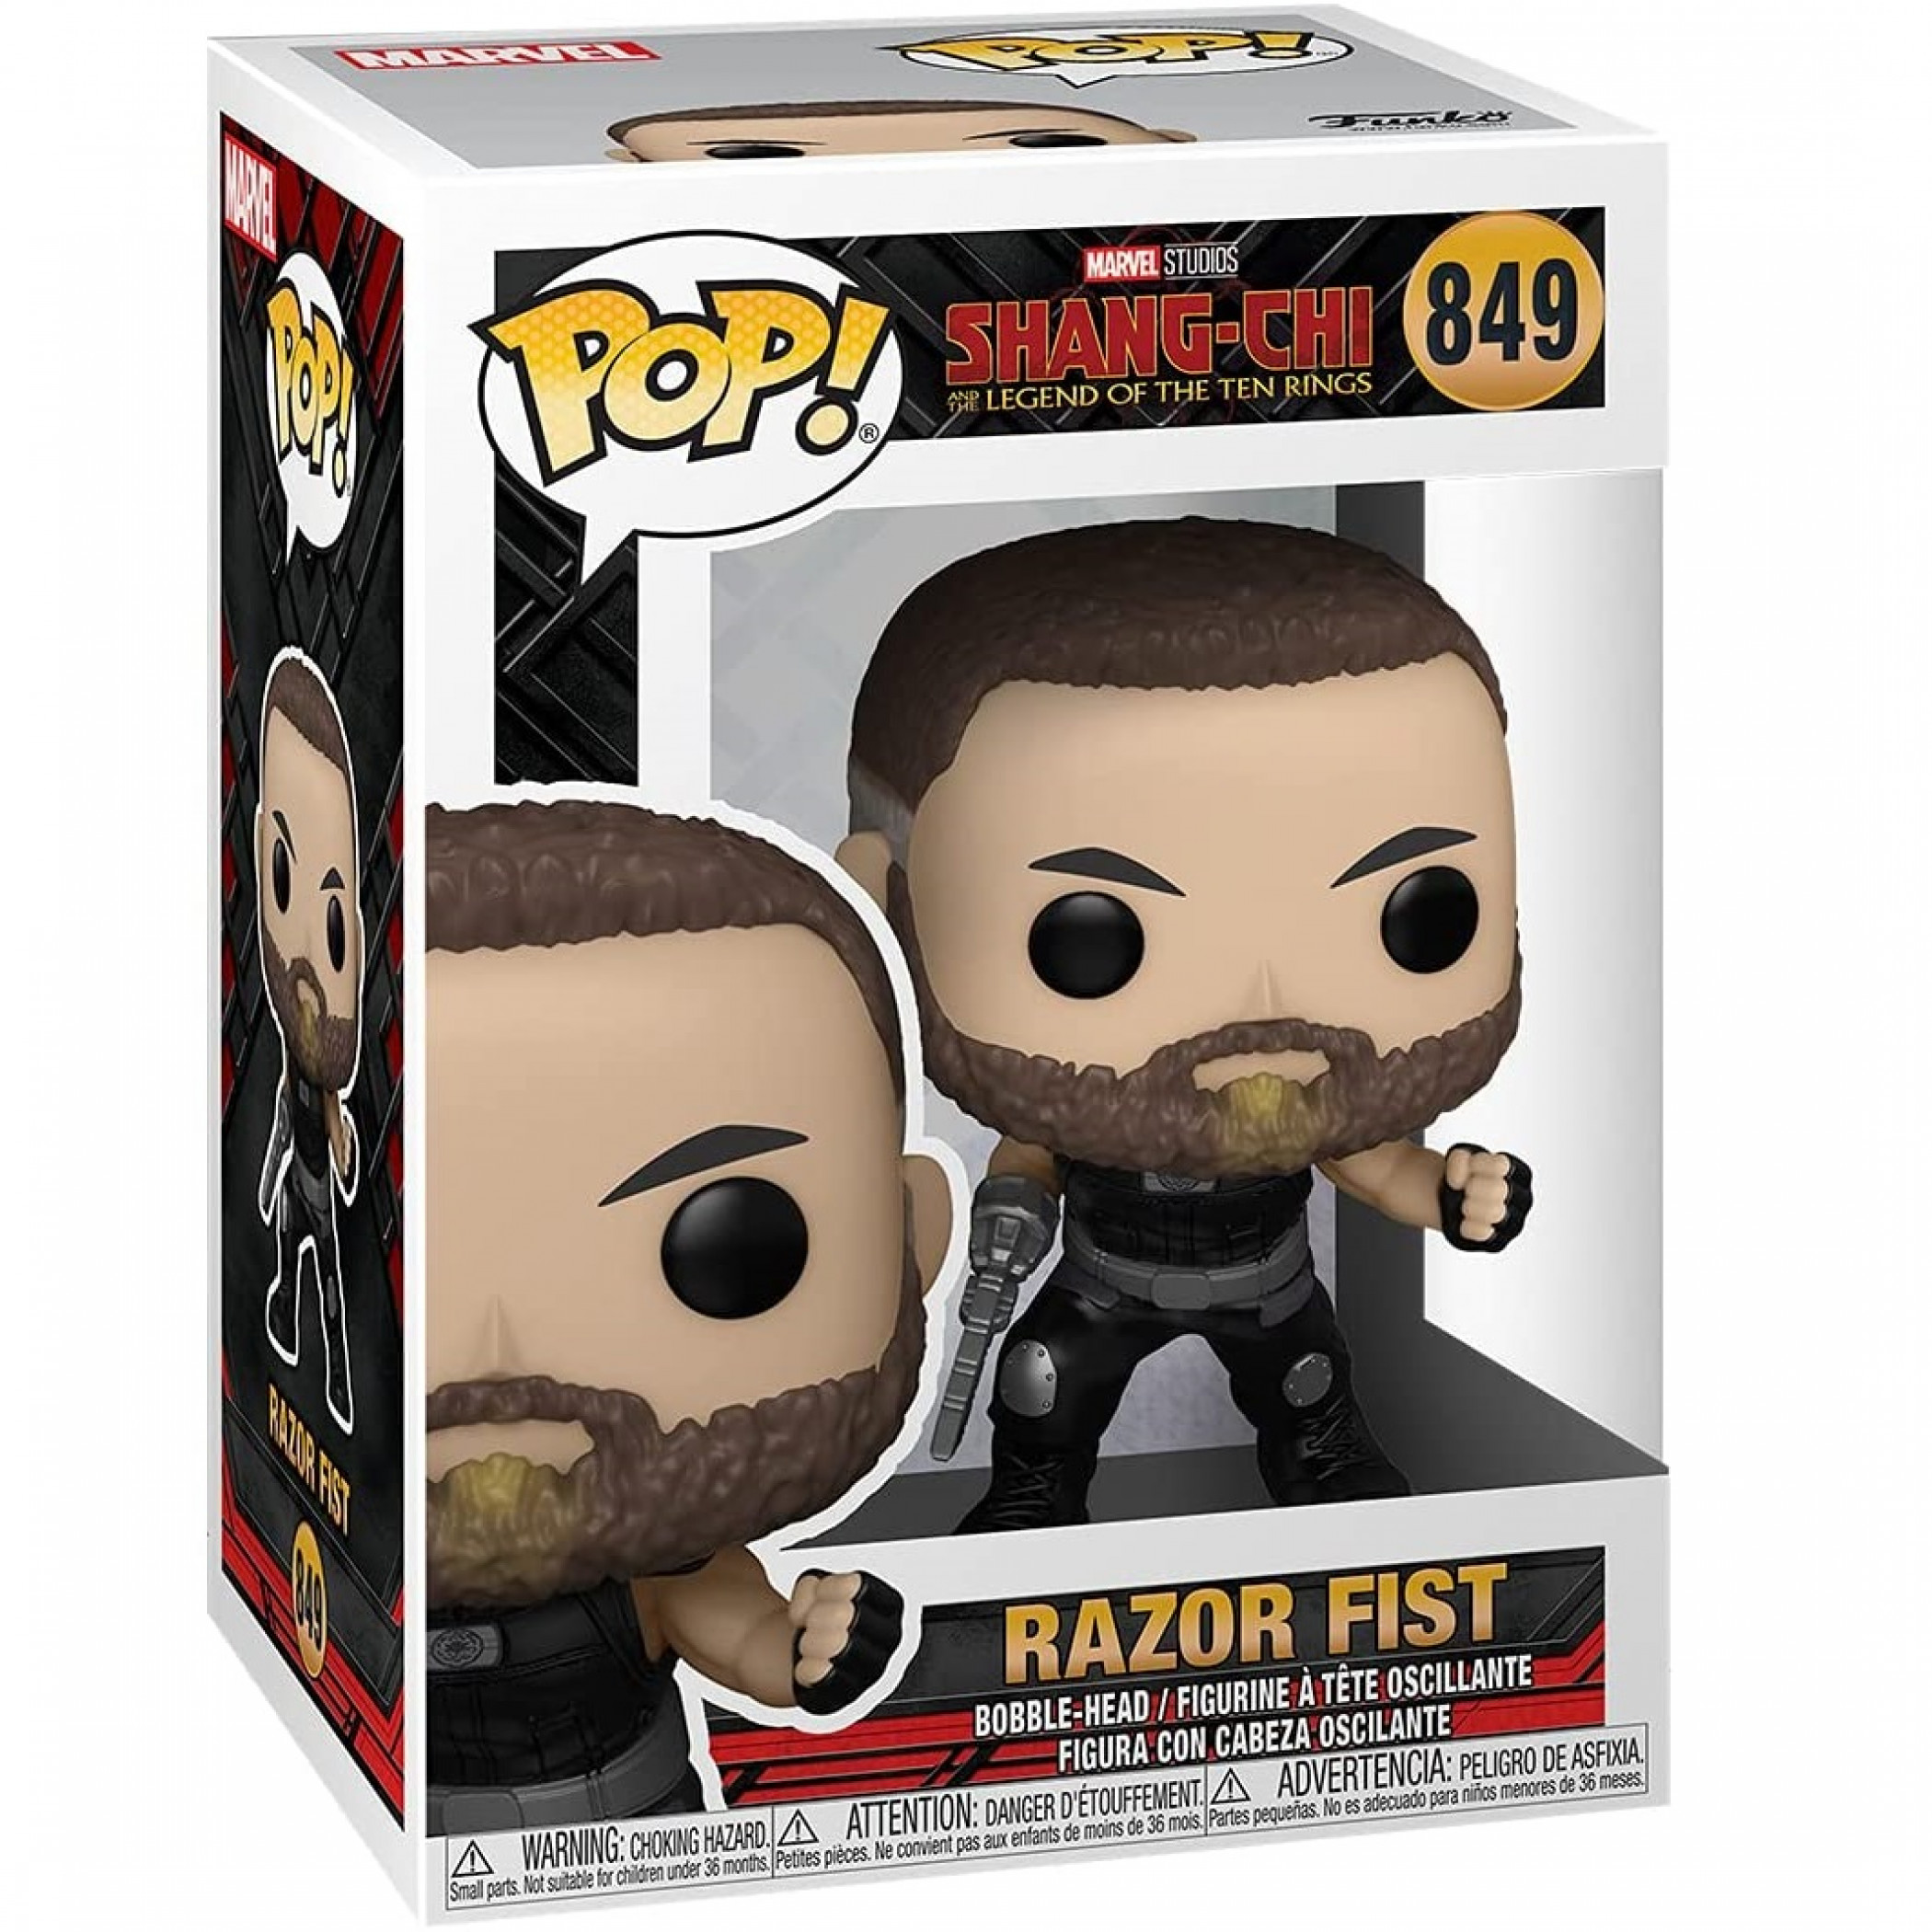 Shang-Chi and the Legends of the Ten Rings Razor Fist Funko Pop! Vinyl Figure